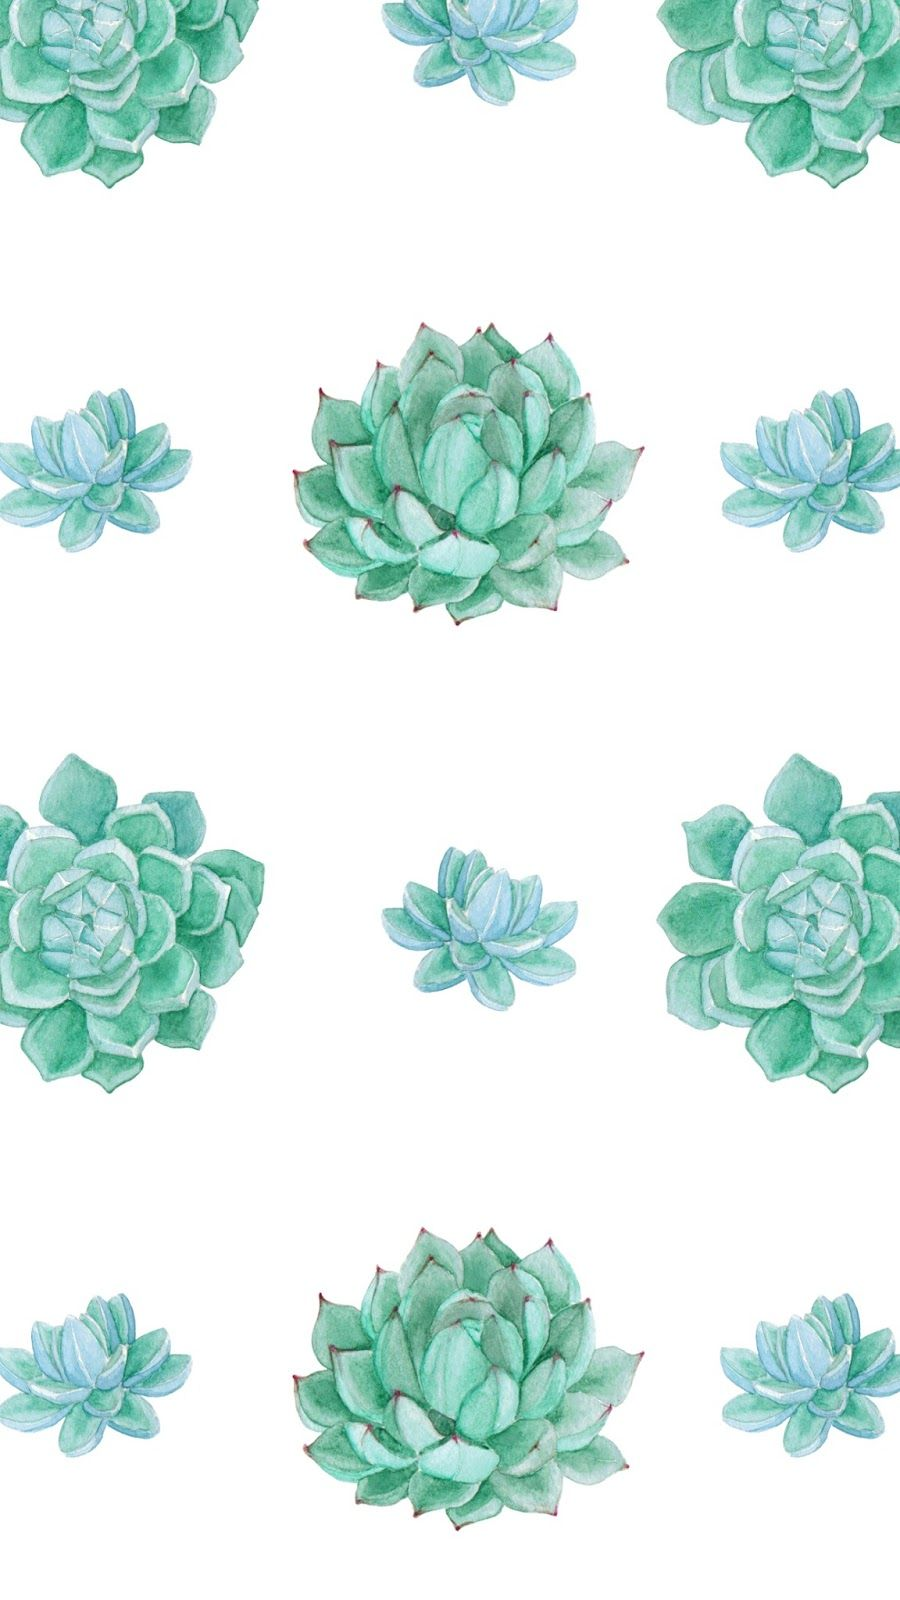 Free Desktop Wallpapers Watercolor Wallpaper Phone Succulents